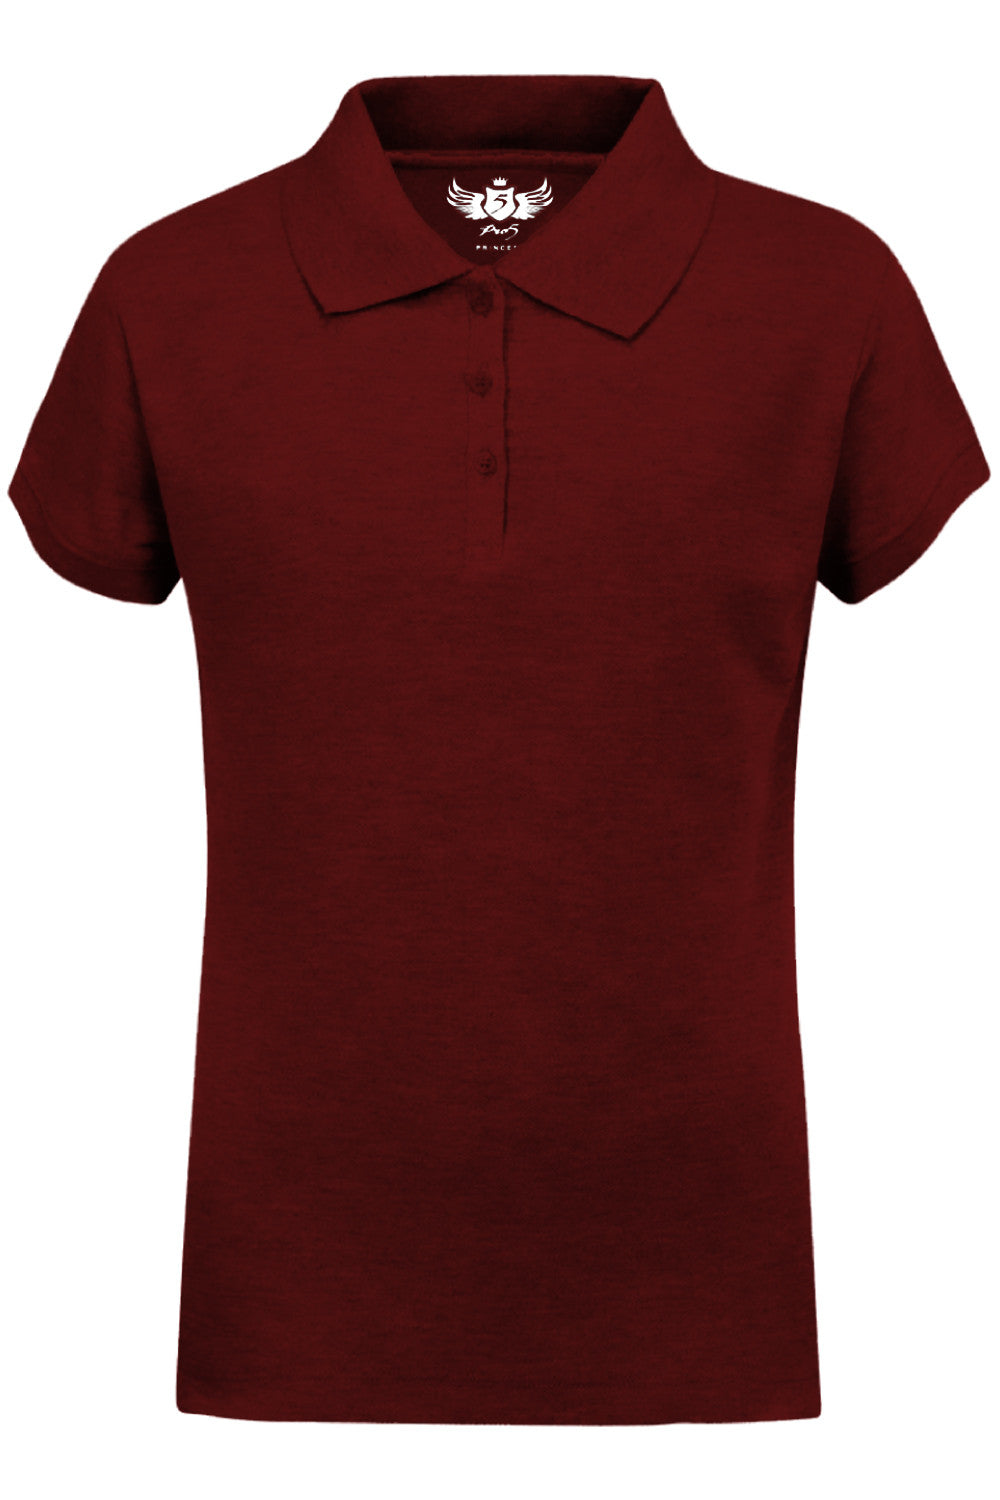 Girls Polo Top Kids School Uniform Burgundy